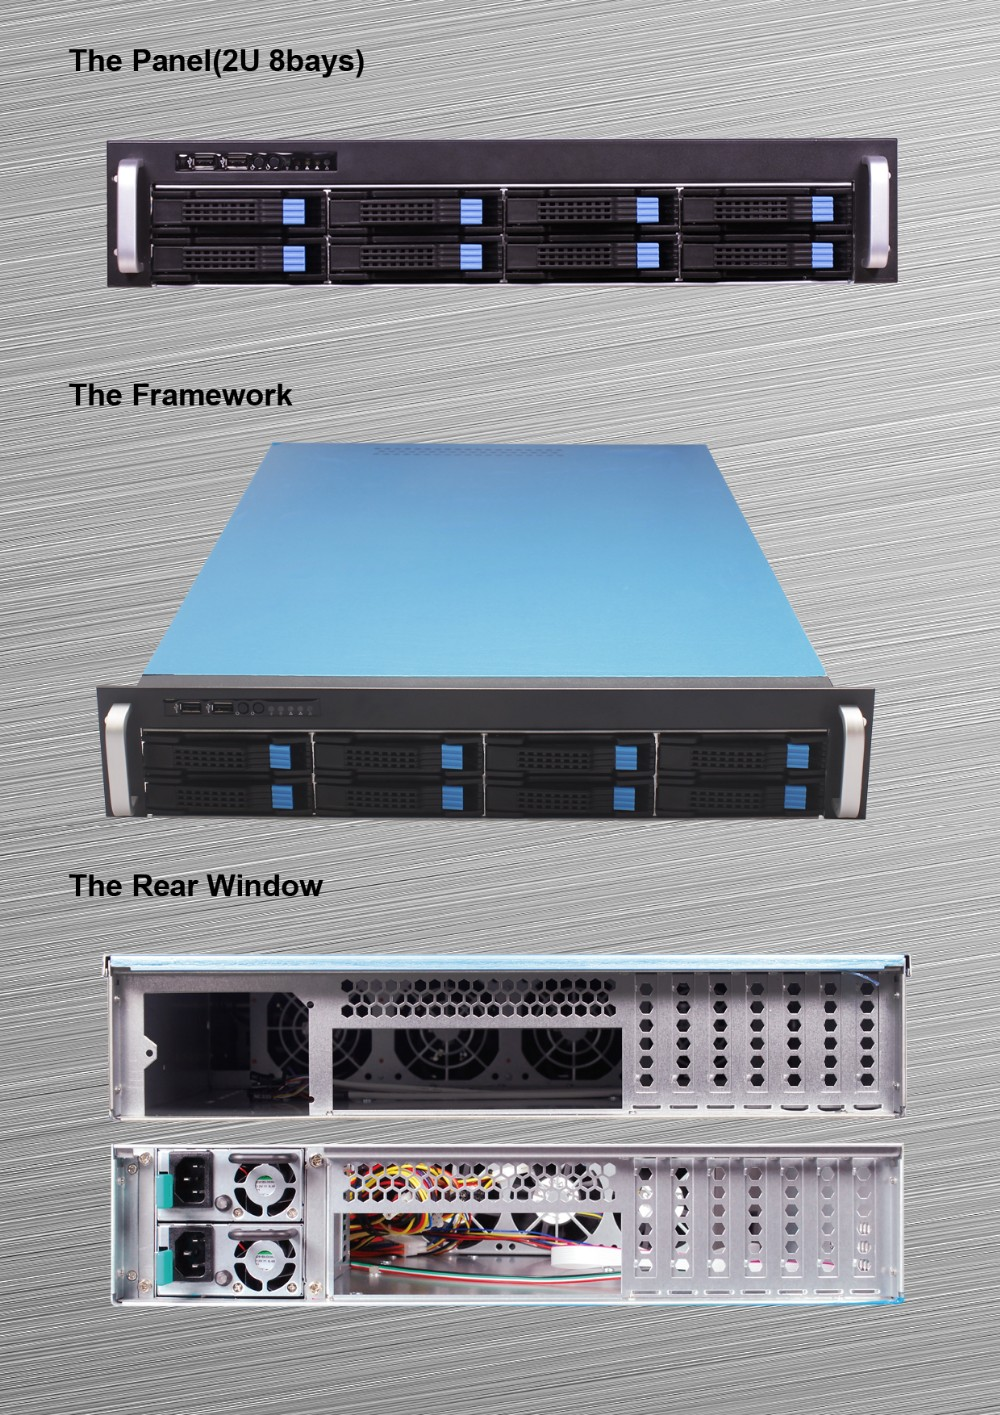 custom case 2U server chassis 8 bays Storage chassis/ hotswap case /rackmount case